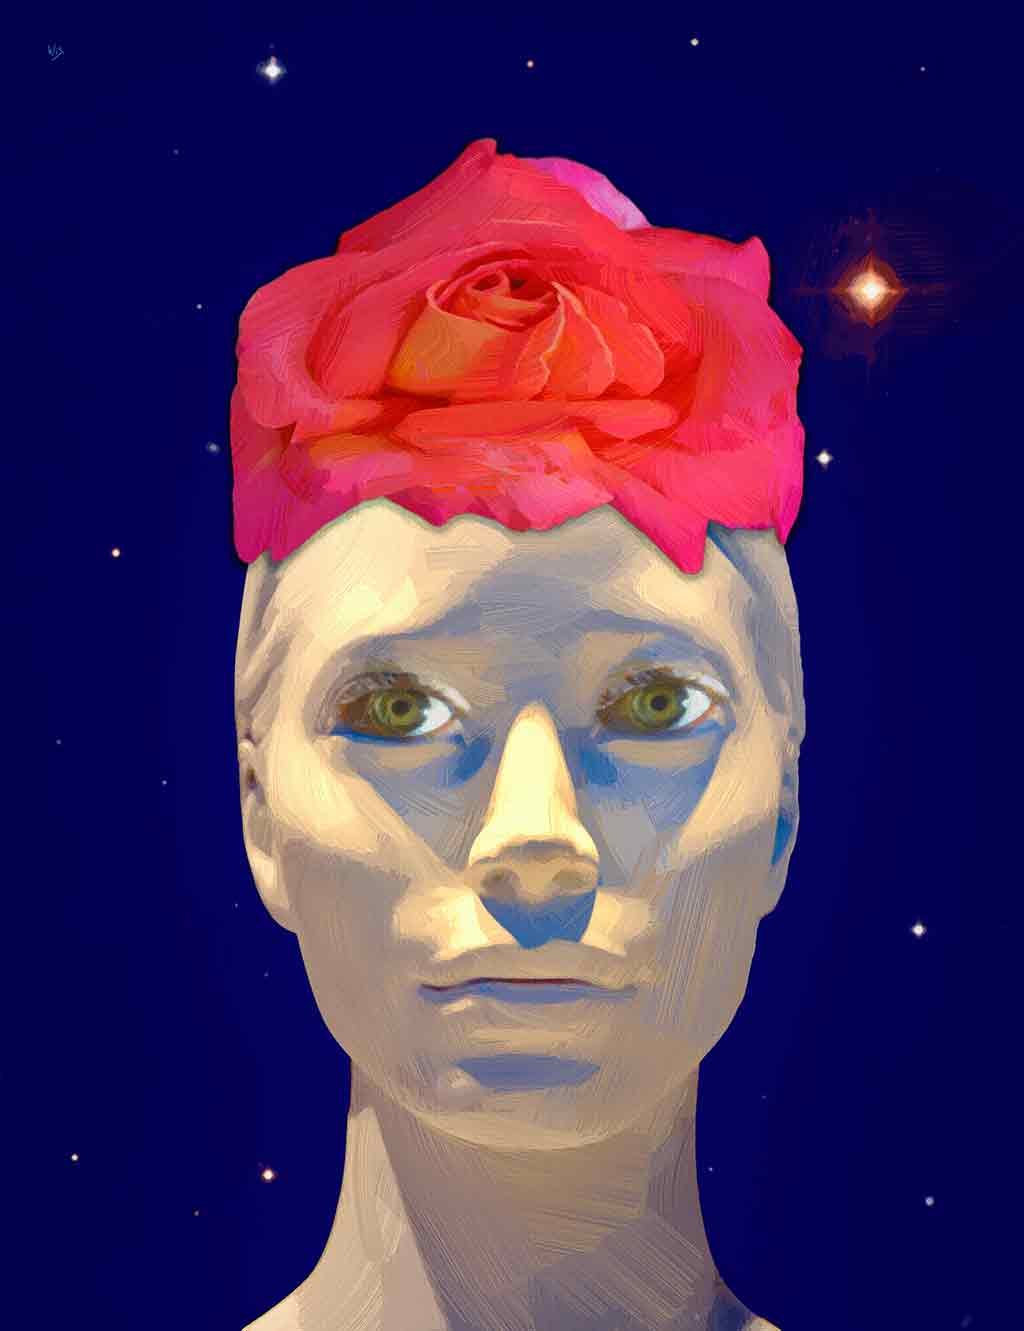 Lady Rose portrait painting with blue starry sky in the background, digital painting and art canvas print by Wieslaw Sadurski